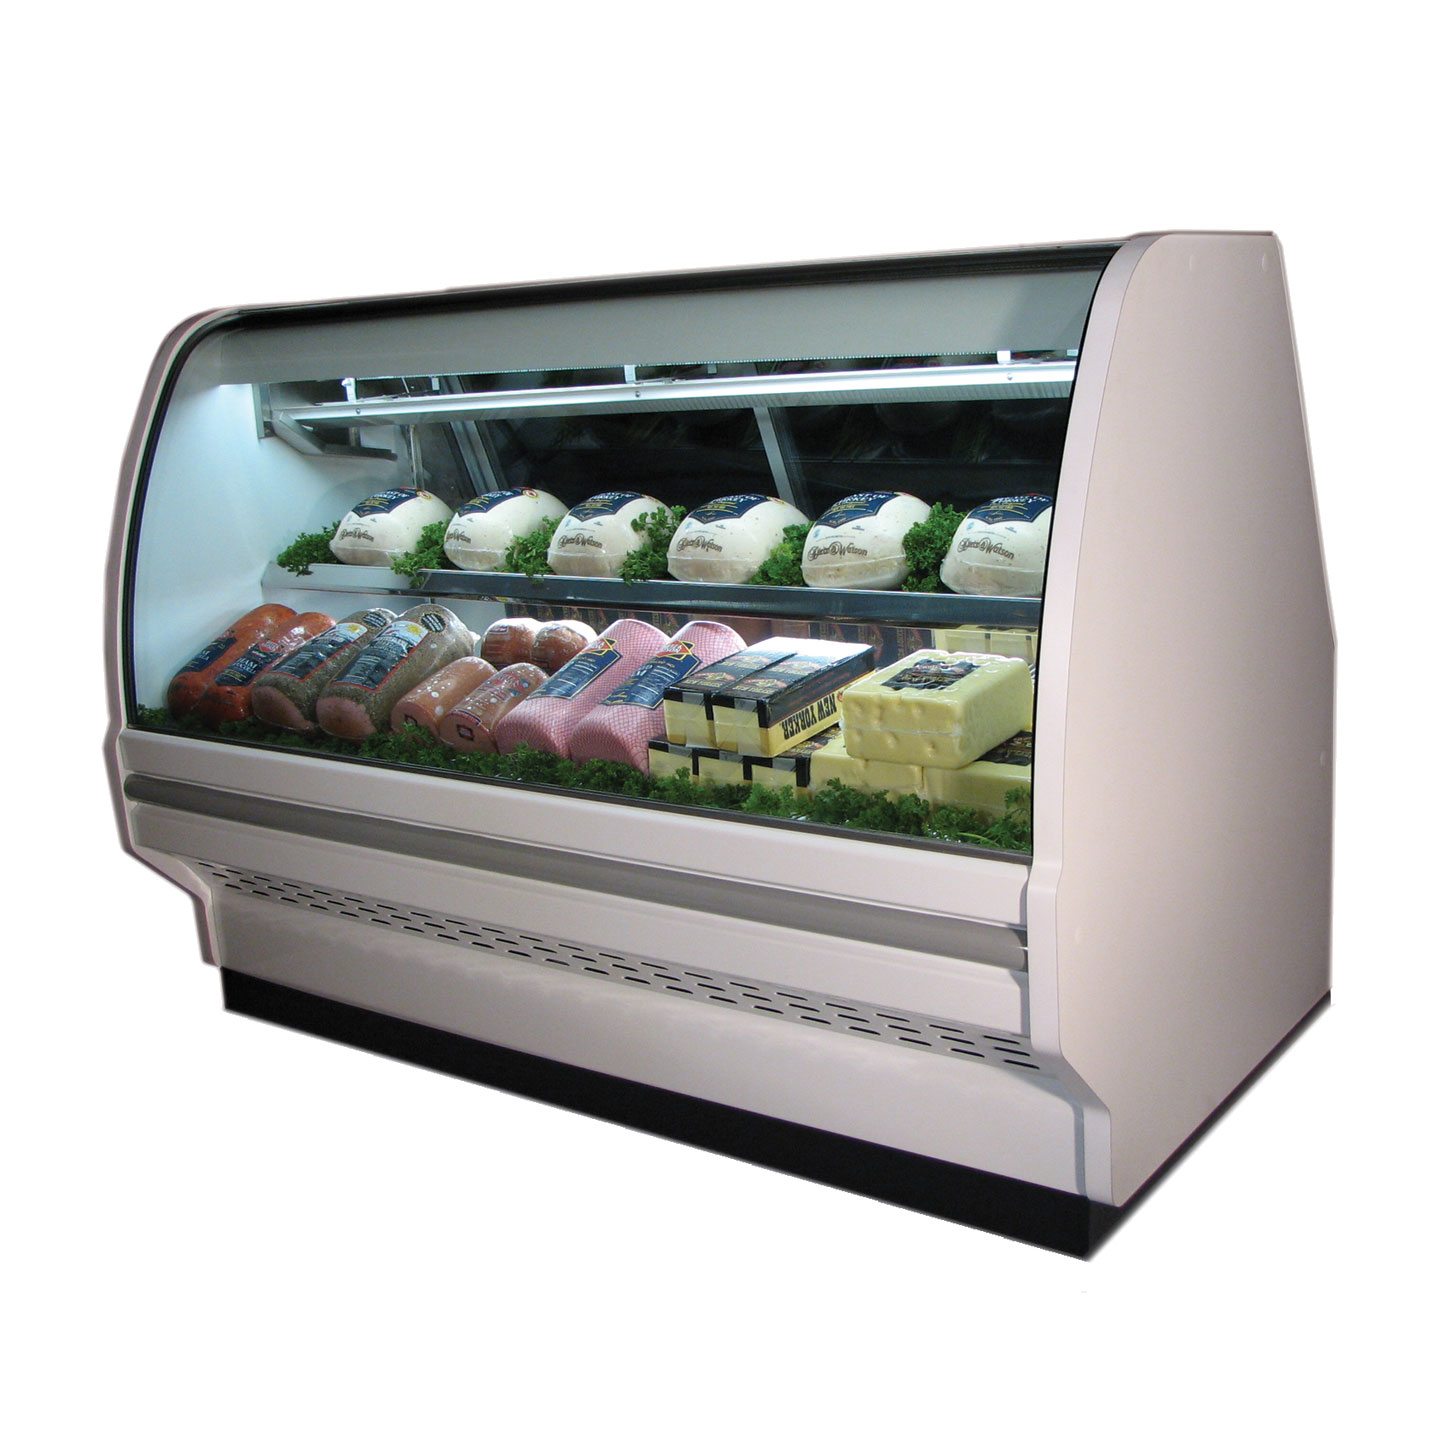 Howard-McCray SC-CDS40E-8C-LED display case, refrigerated deli